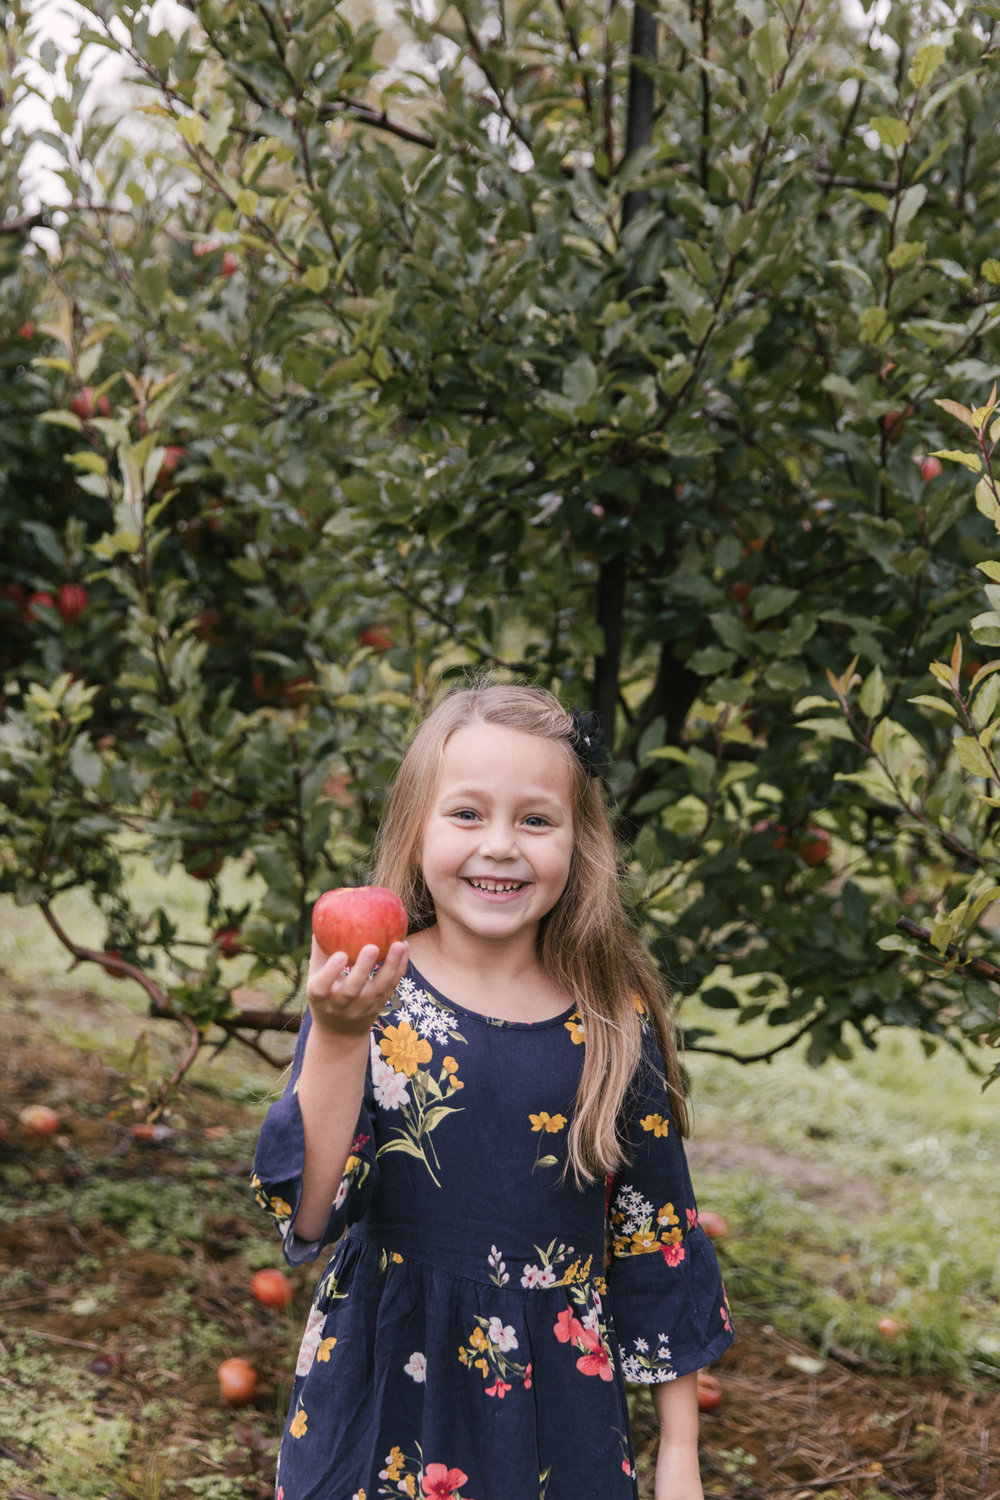 family-photography-session-at-hartford-apple-orchards-hartford-ohio-by-family-photographer-christie-leigh-photo-9.JPG